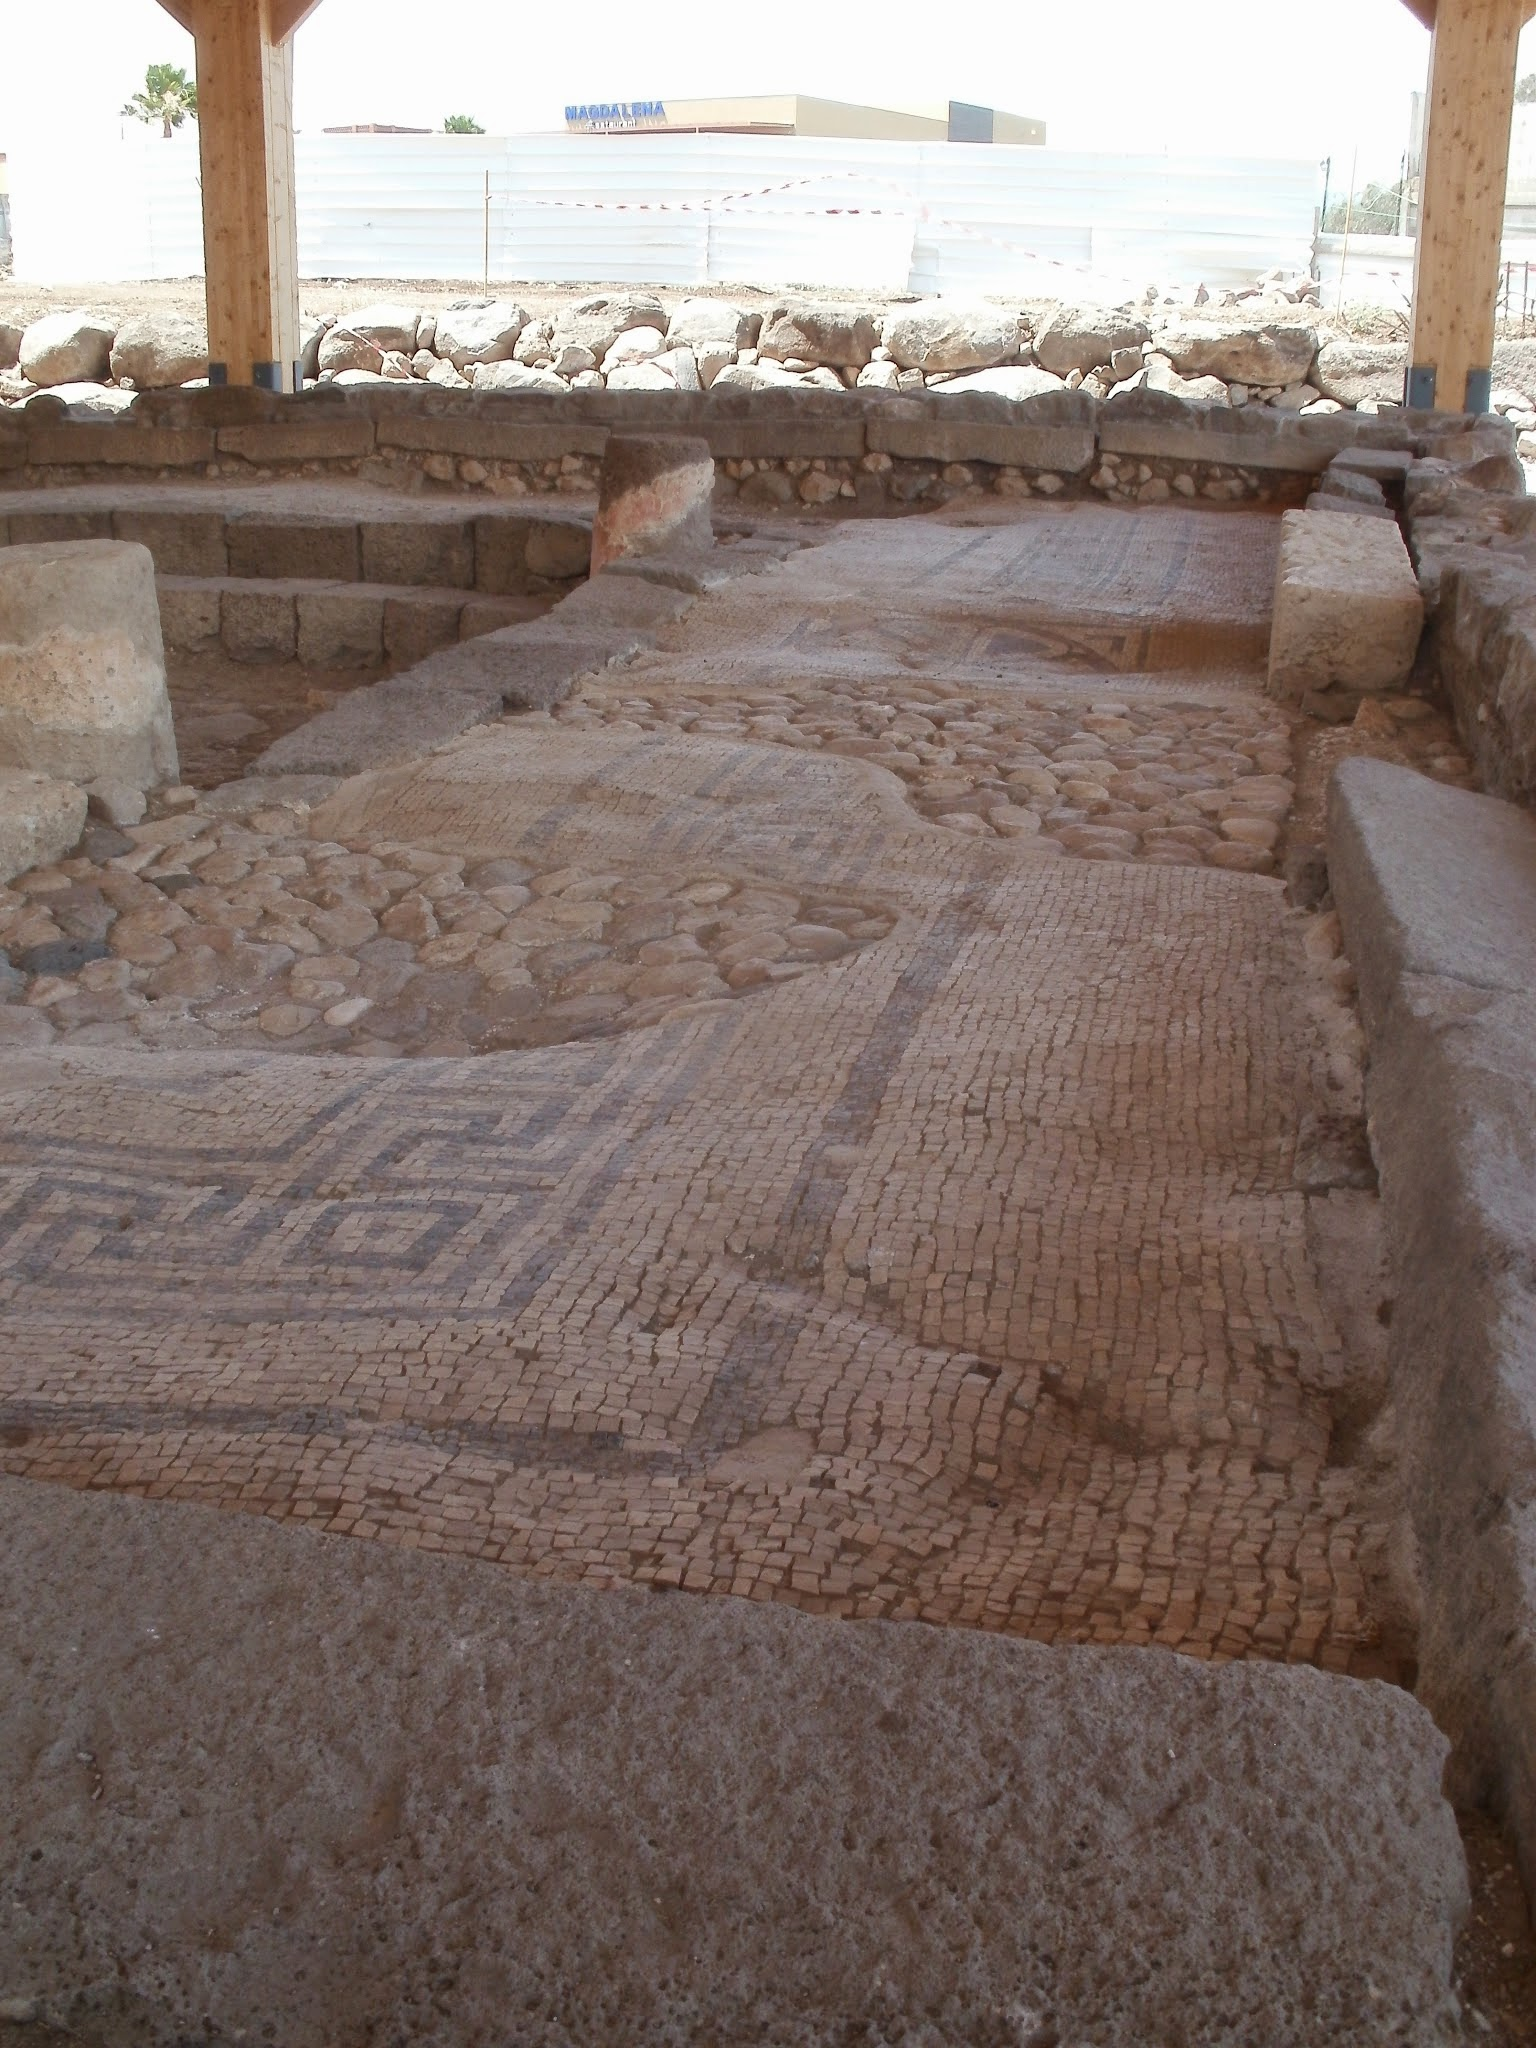 Original mosaic floors from the synagogue in Magdala.